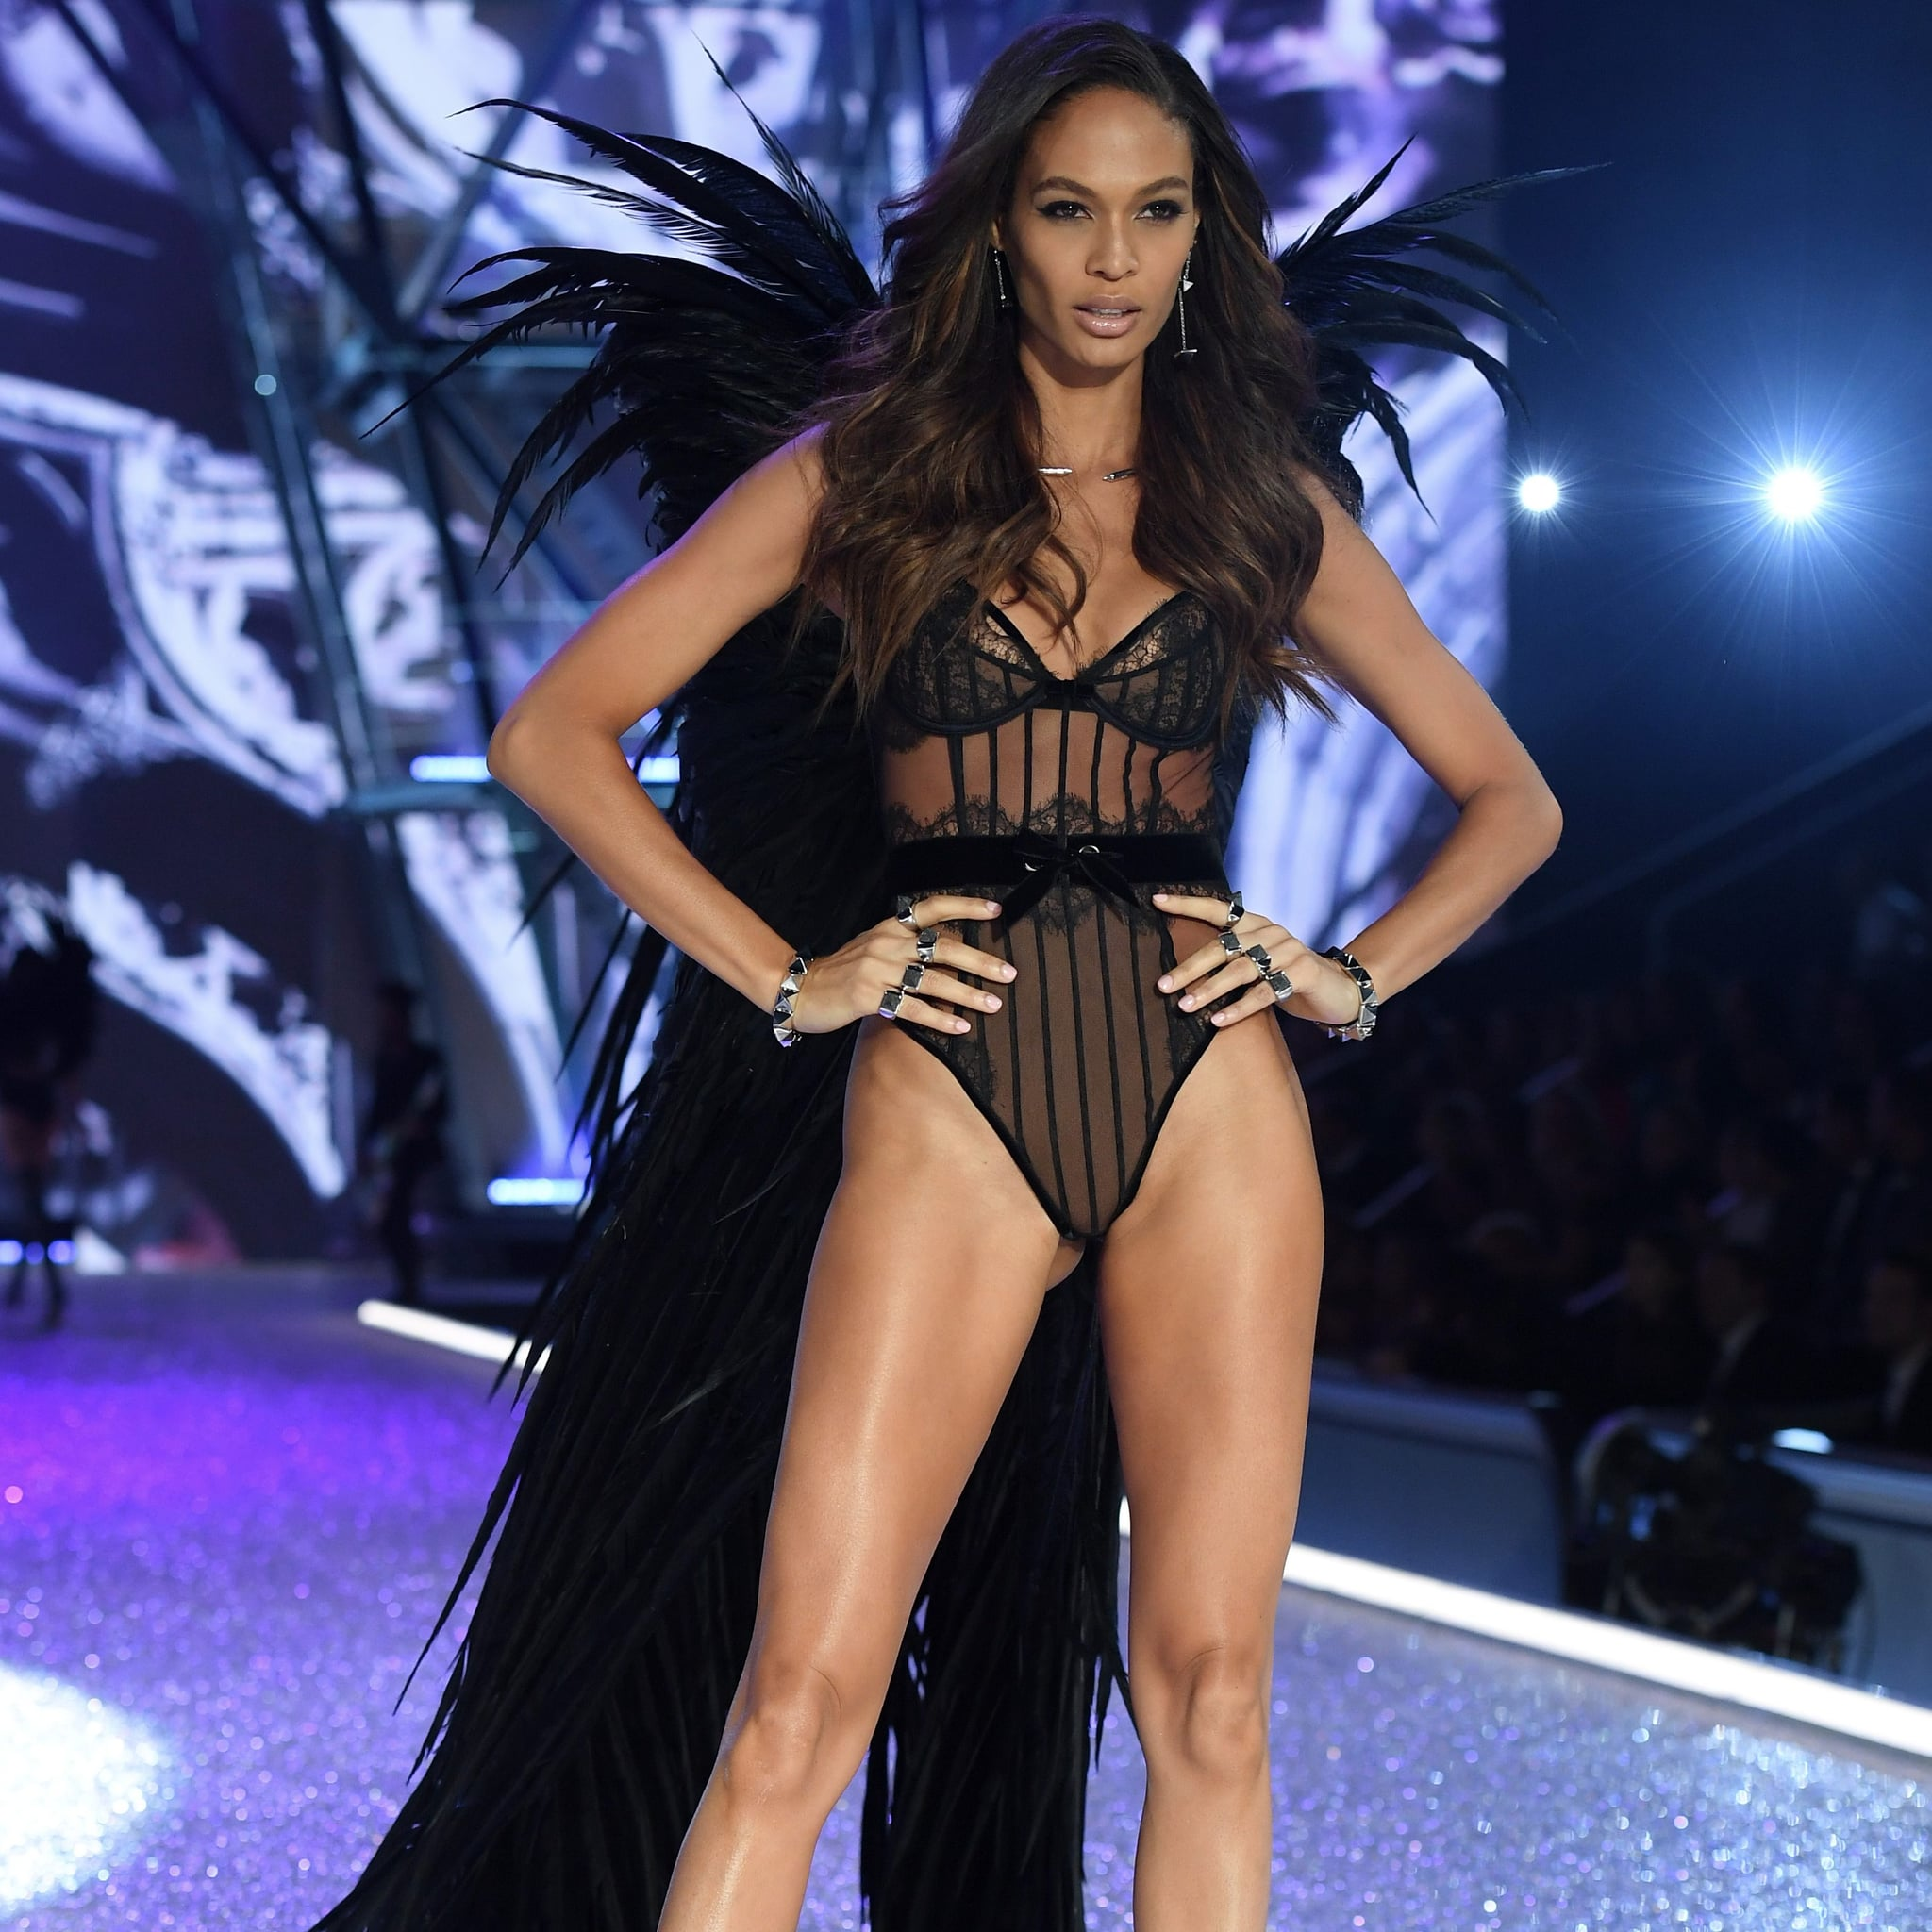 Image result for Joan Smalls in VS wings